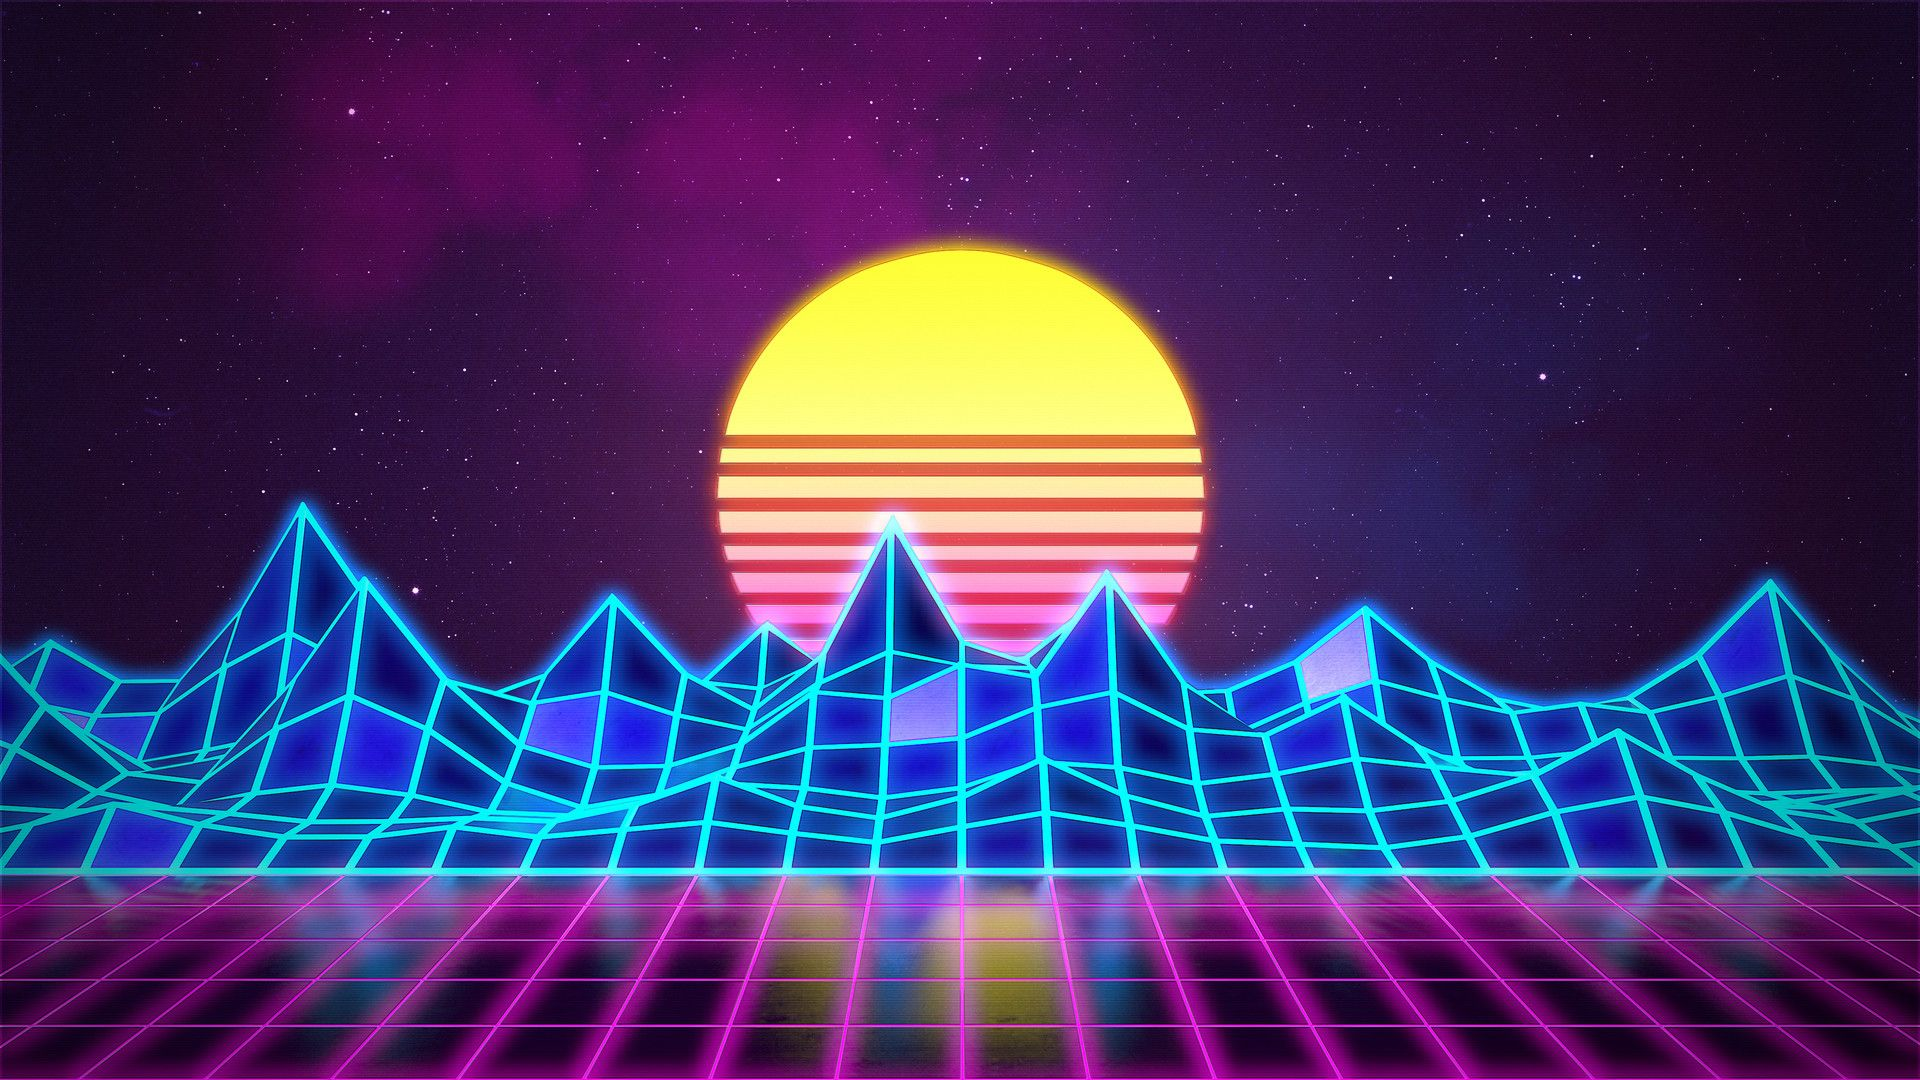 Artstation Synthwave Neon 80 S Background Rafael De Jongh Synthwave Neon Neon Backgrounds 80s Background